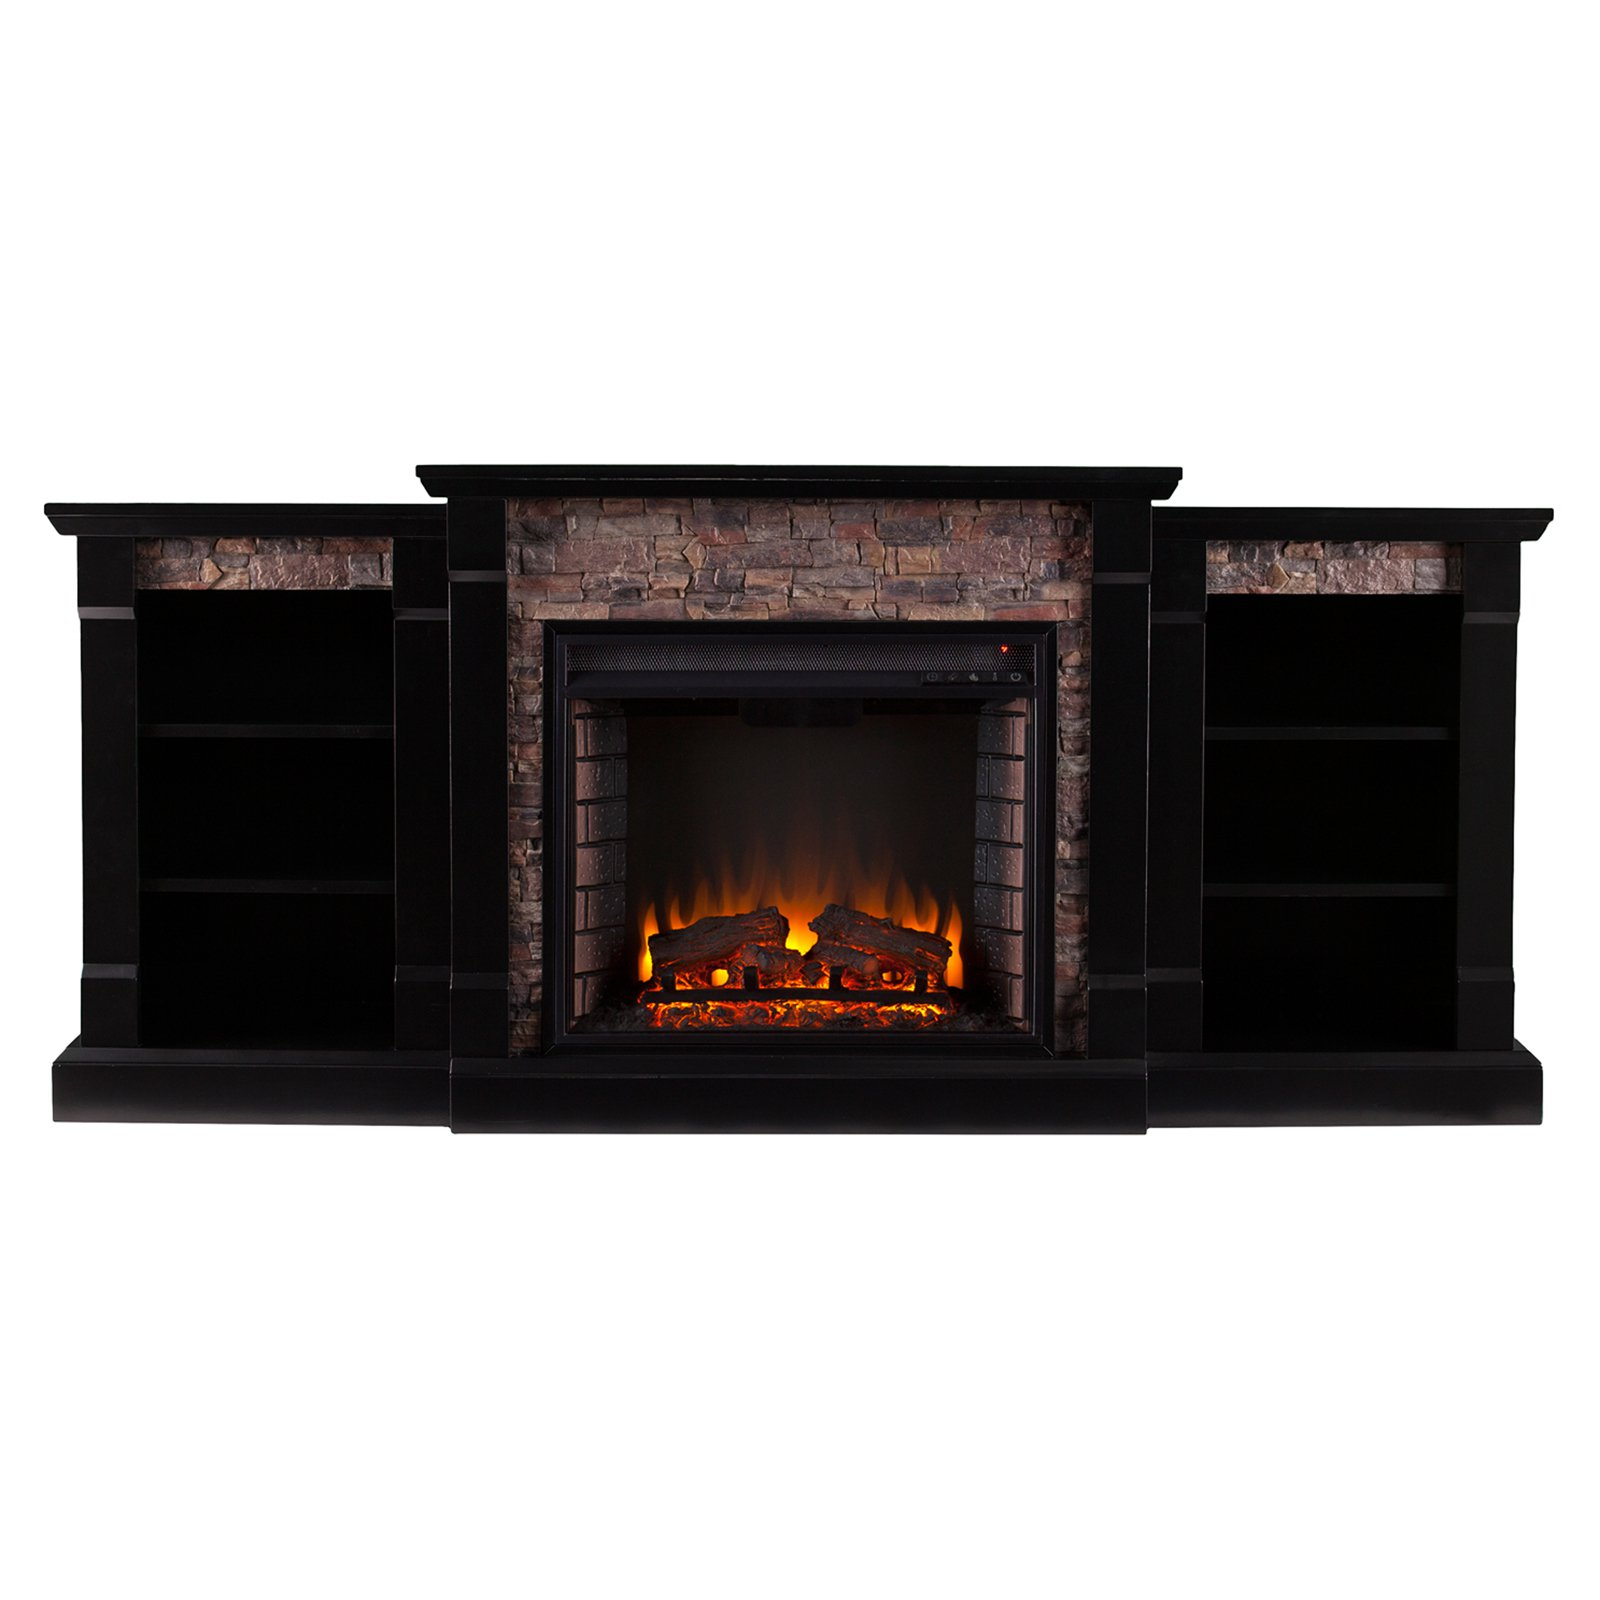 Stone Electric Fireplace Tv Stand Details About Large Electric Fireplace W Bookcase Faux Stone Wood Heater Tv Stand Remote Room